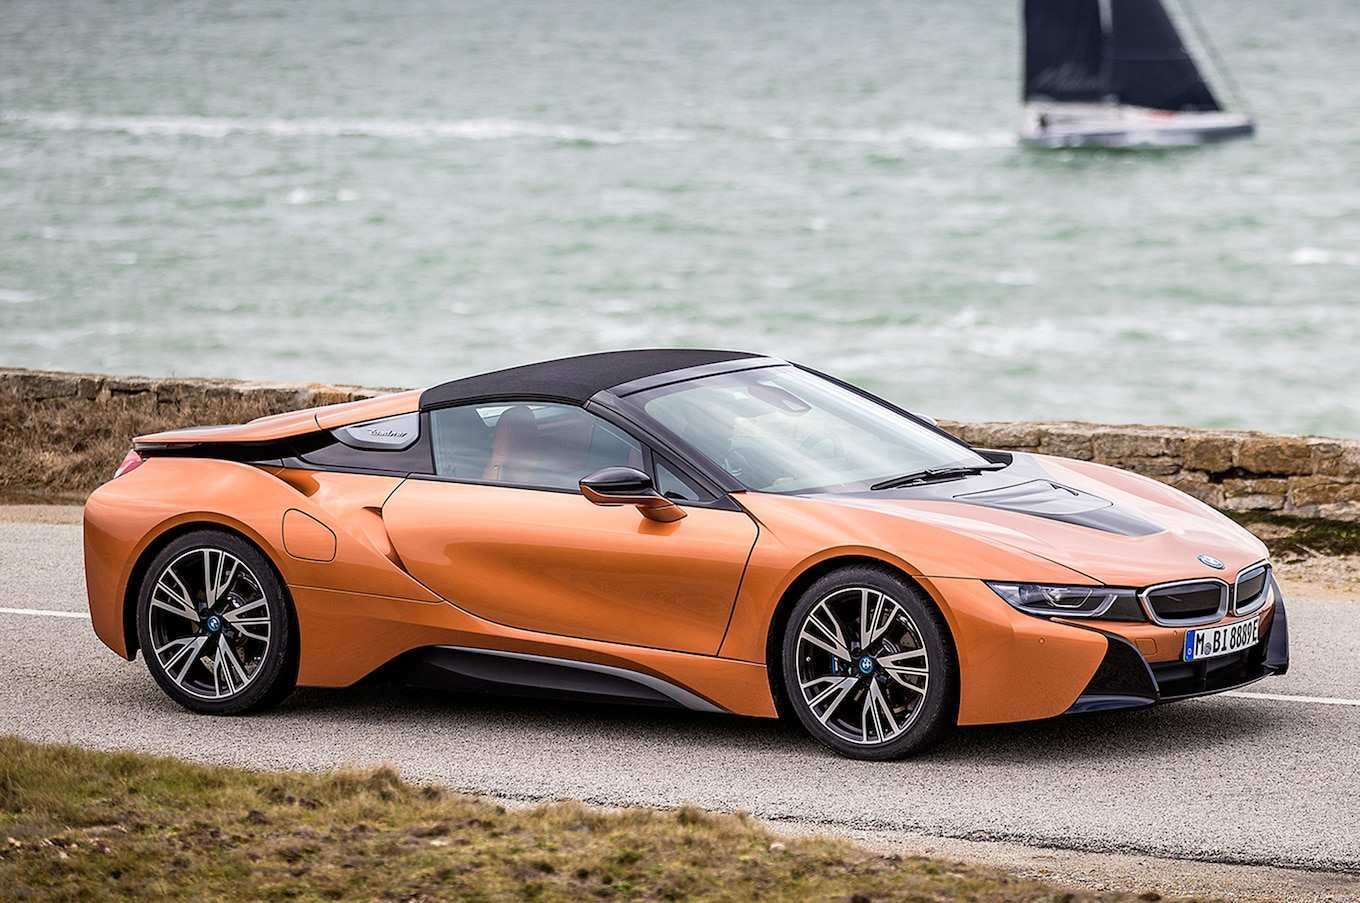 42 Best Review 2019 Bmw I8 Roadster Performance by 2019 Bmw I8 Roadster